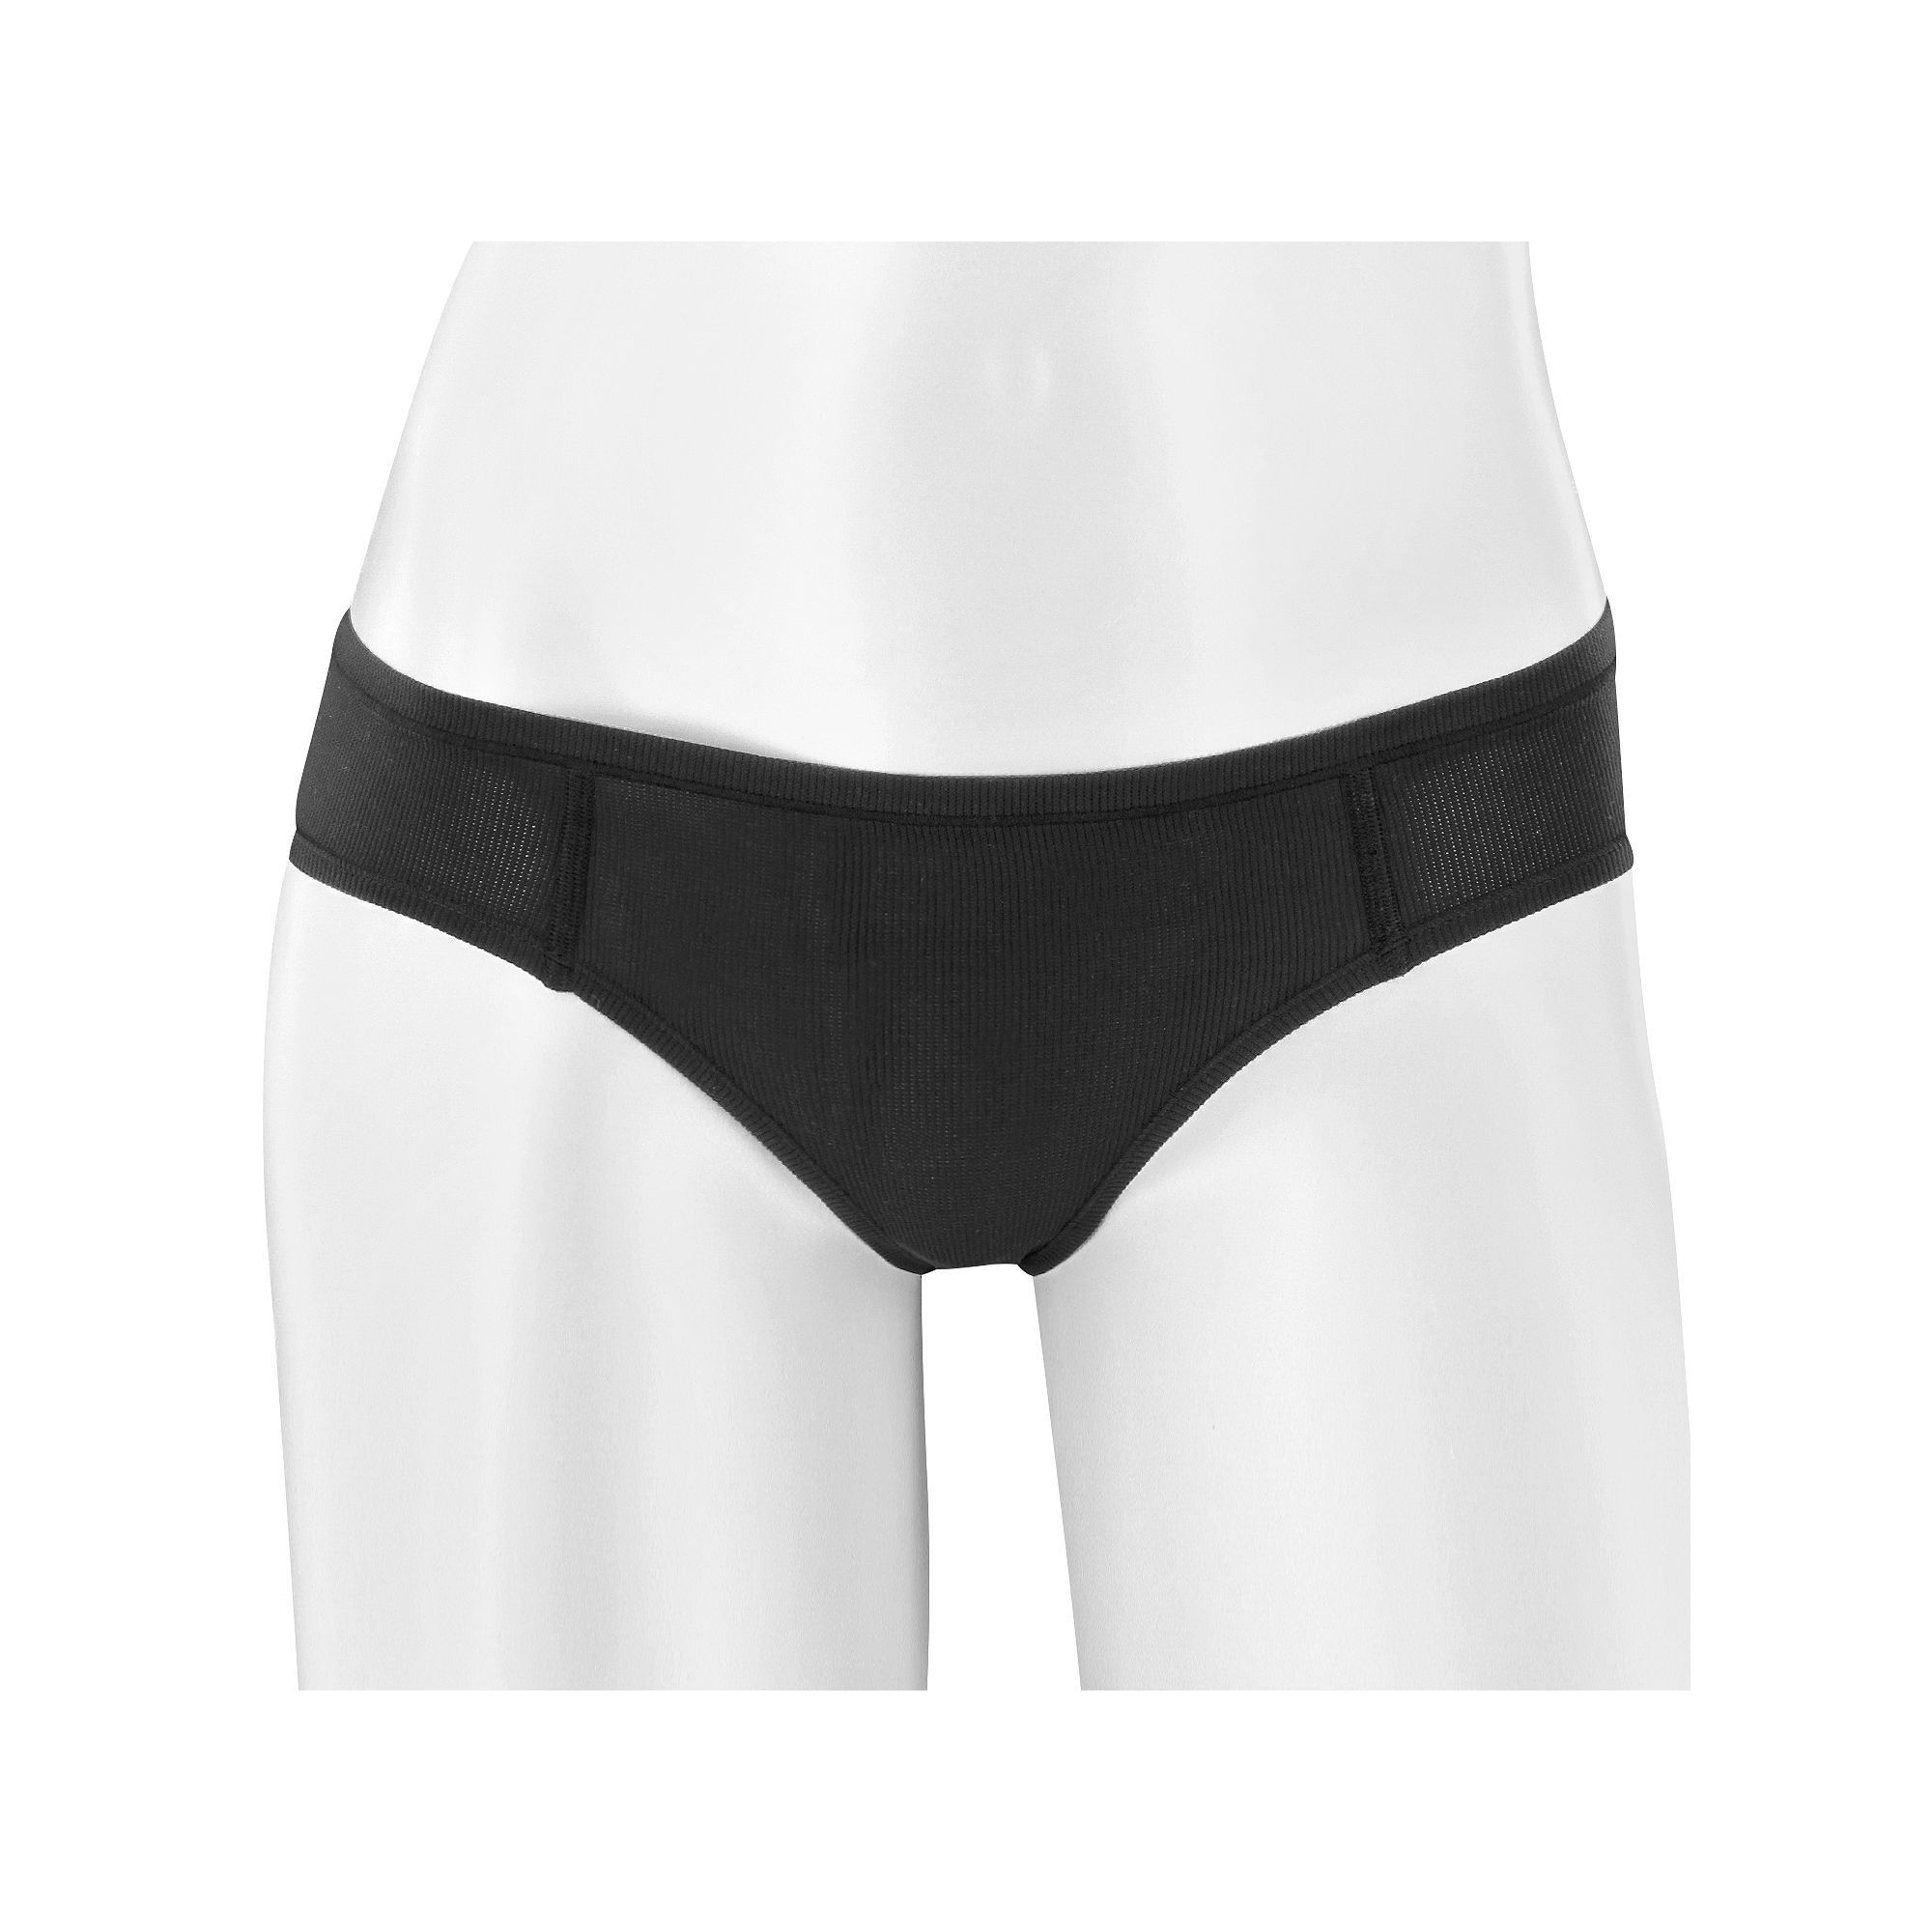 608d0881c33e Women's adidas Superlite Underwear Single Thong Panty | Products ...